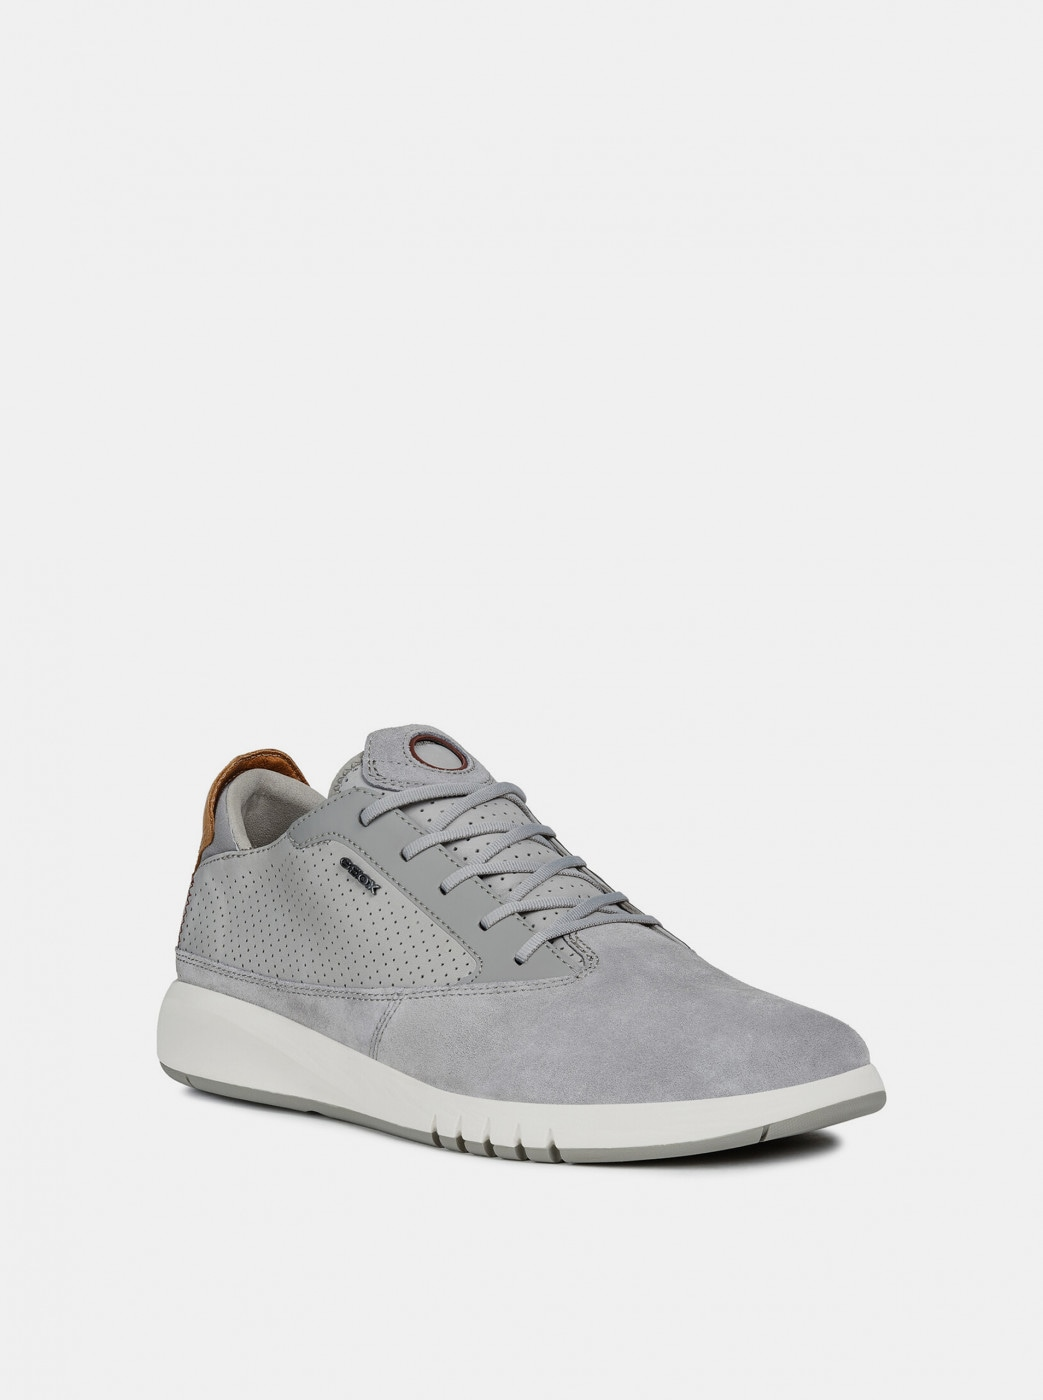 Geox Aerantis Men's Grey Suede Sneakers